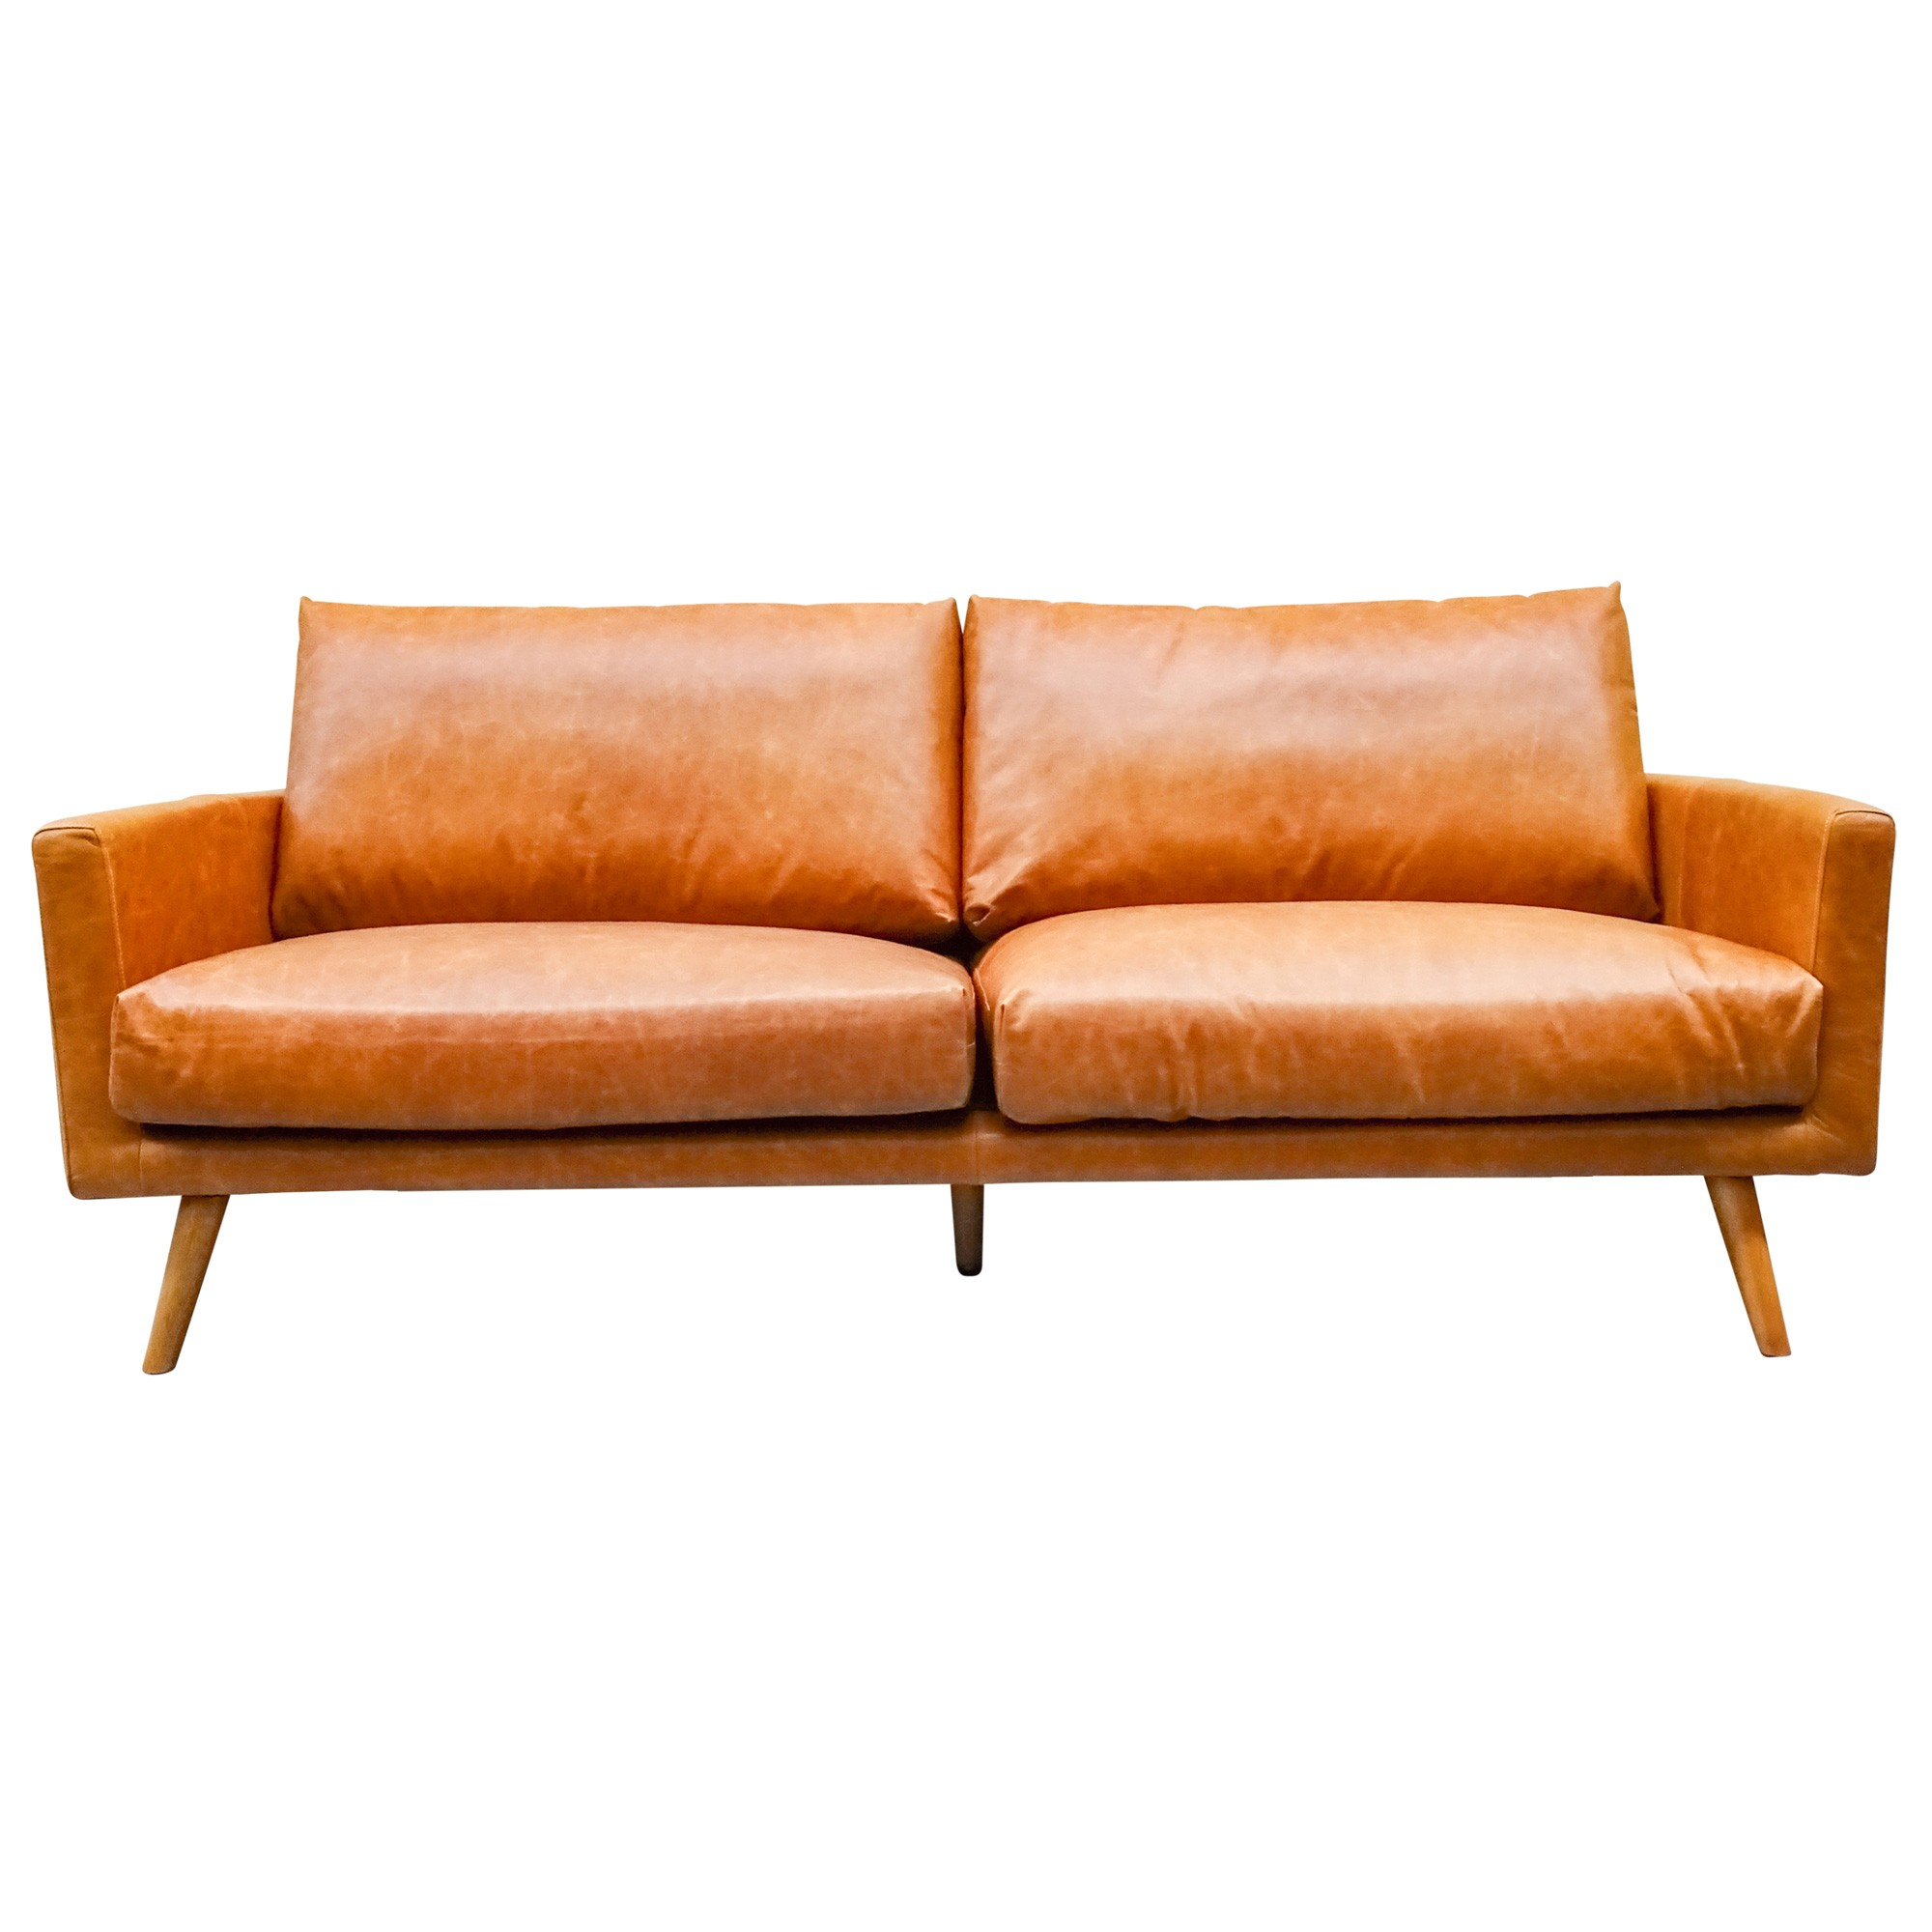 Madrid Leather Sofa, 3 Seater